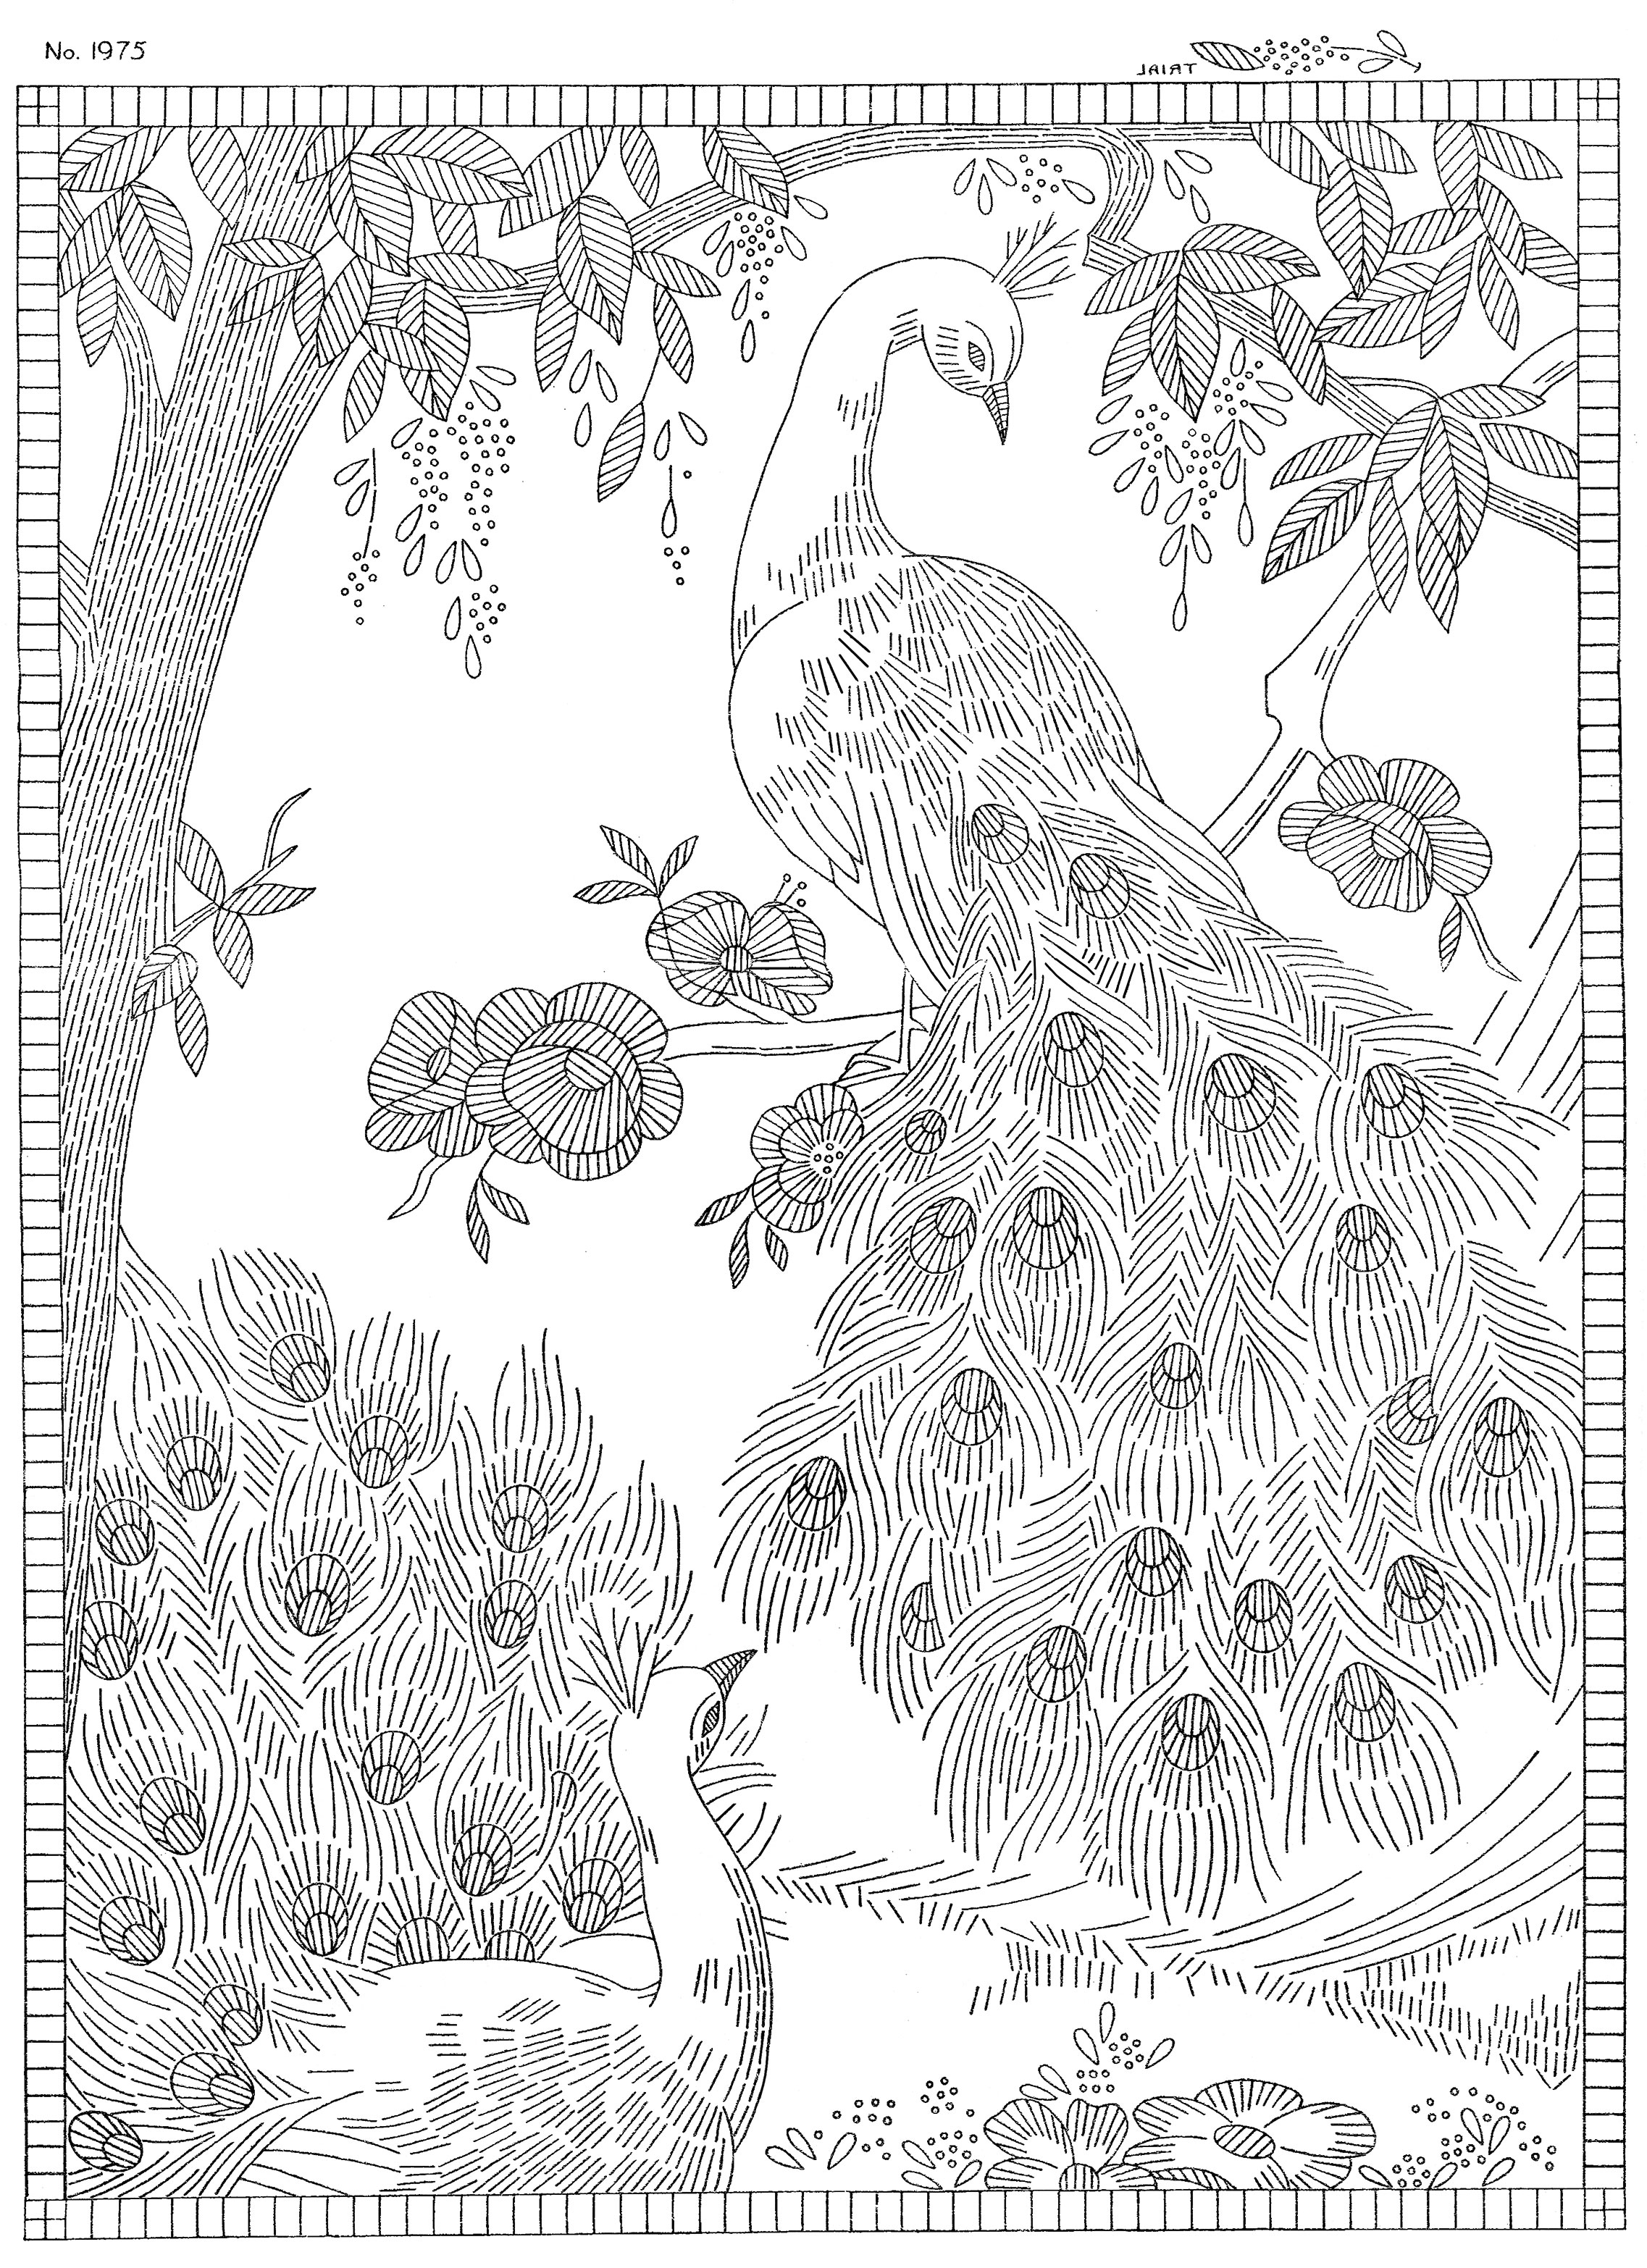 coloring book embroidery laura wheeler design 1975 peacock wall hanging q is